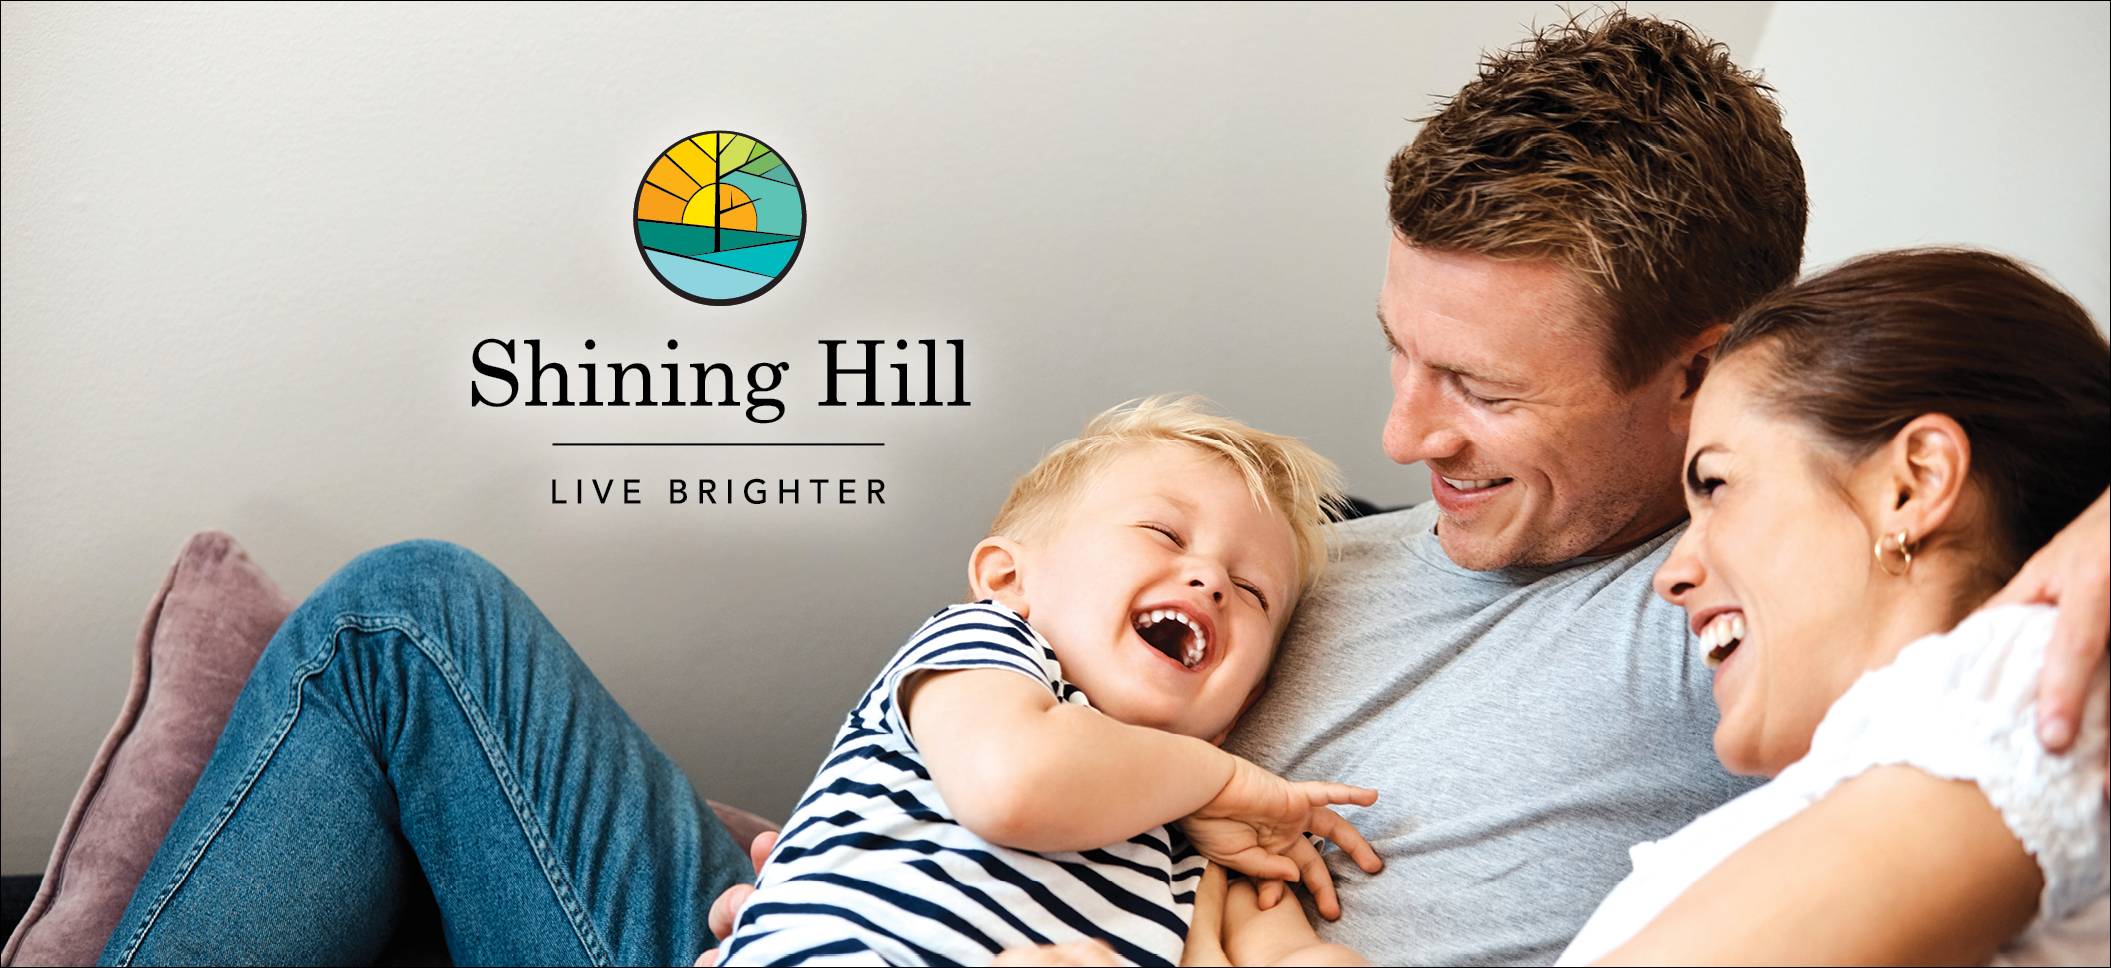 Shining Hill Family laugh image